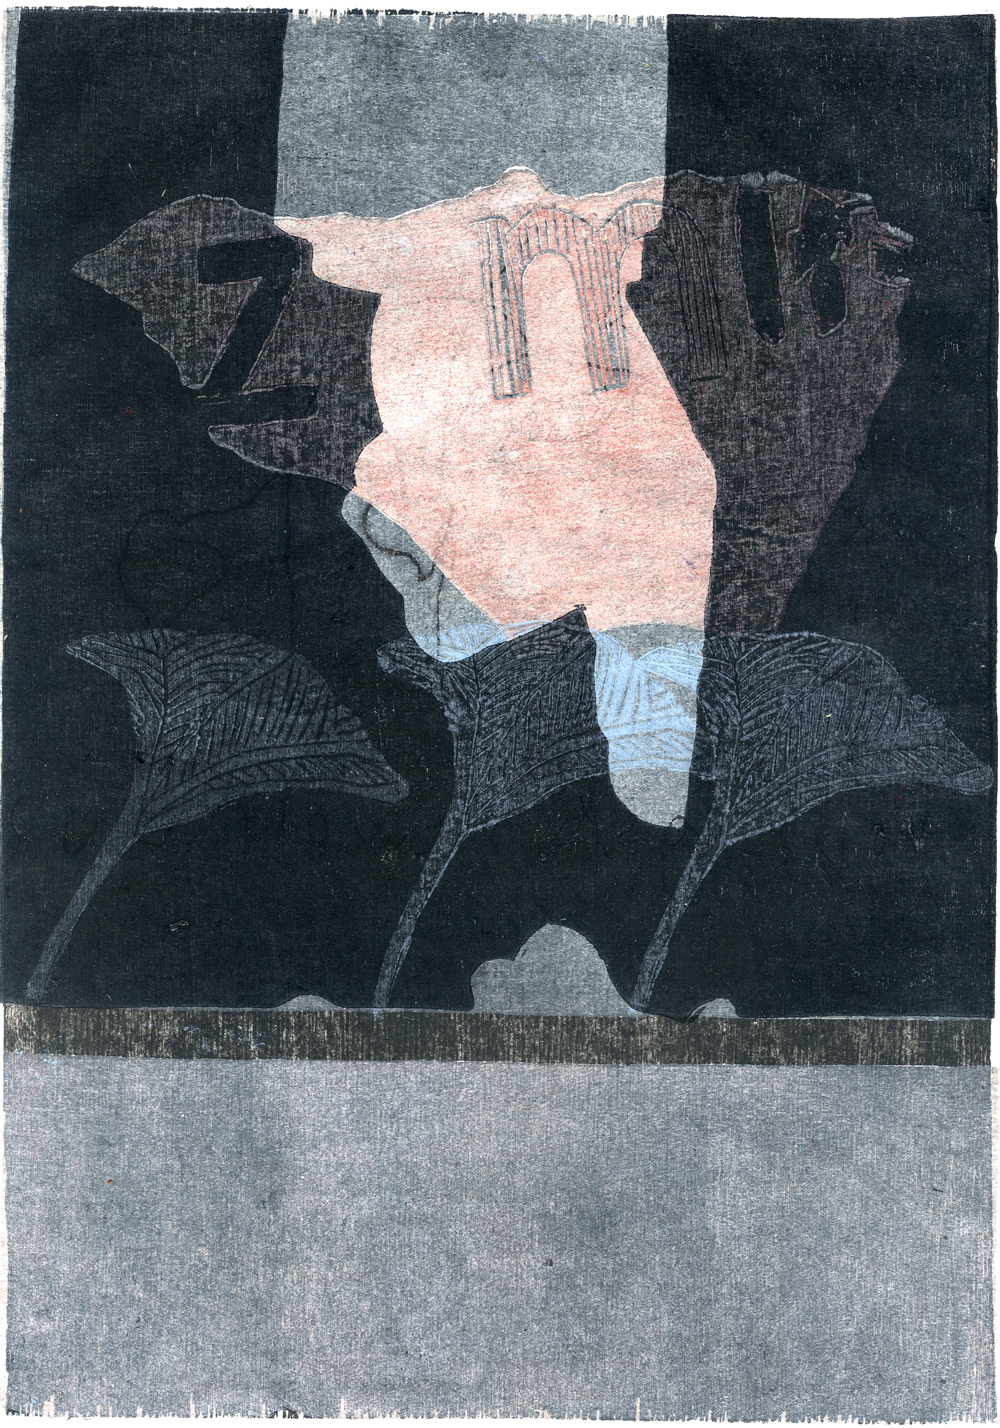 Blue fingers. 21 x 30 cm. 1/1 Woodcut. 2007. Sold